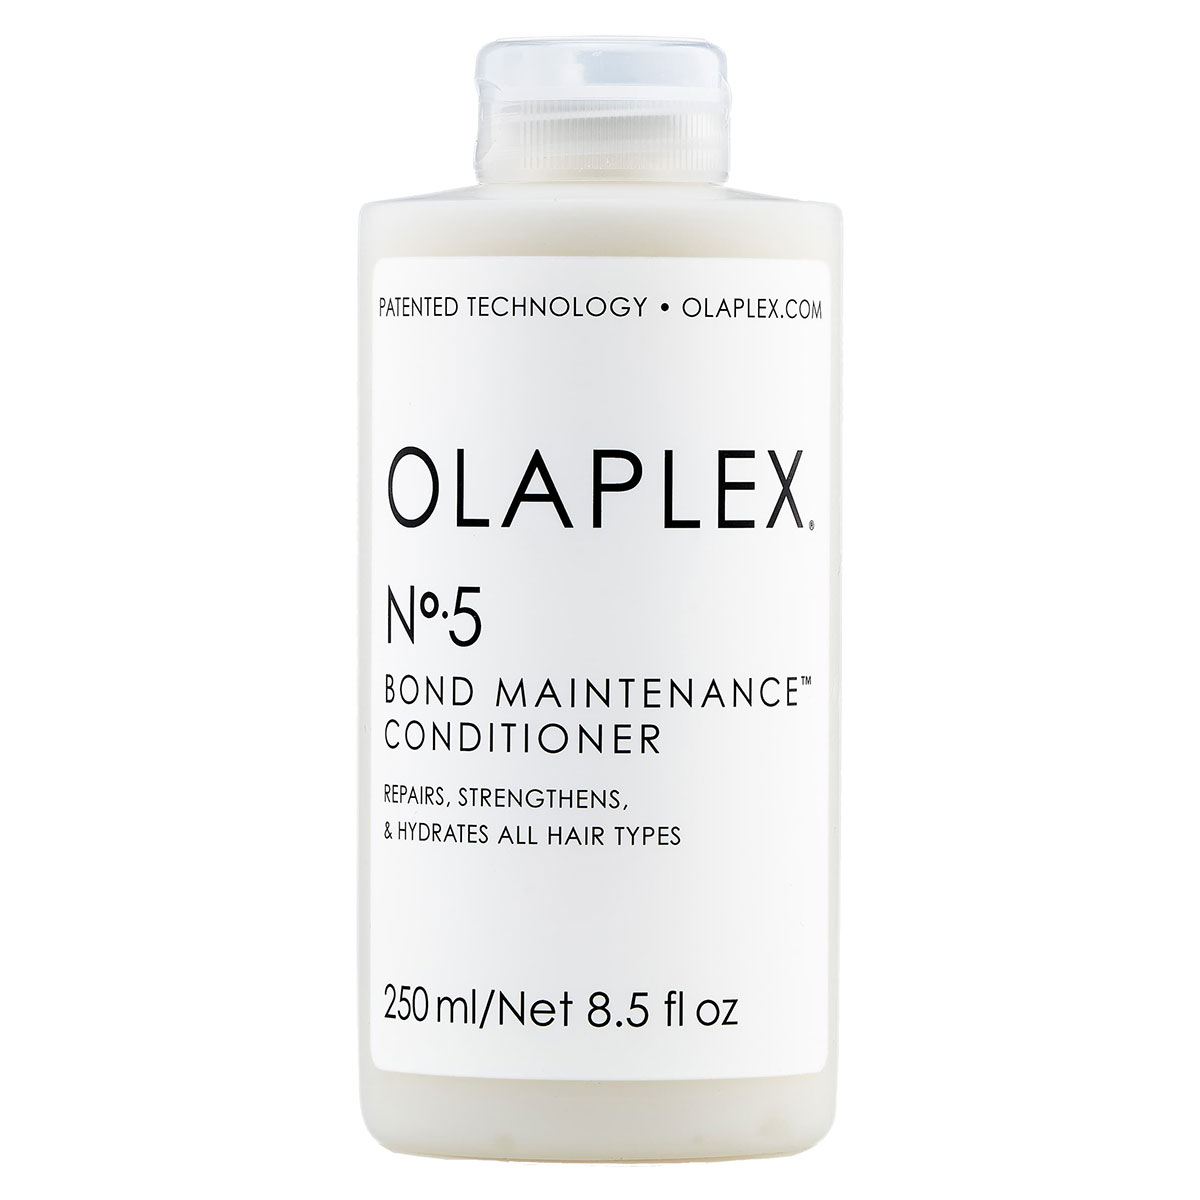 Olaplex No.5 Bond Maintenance Conditione